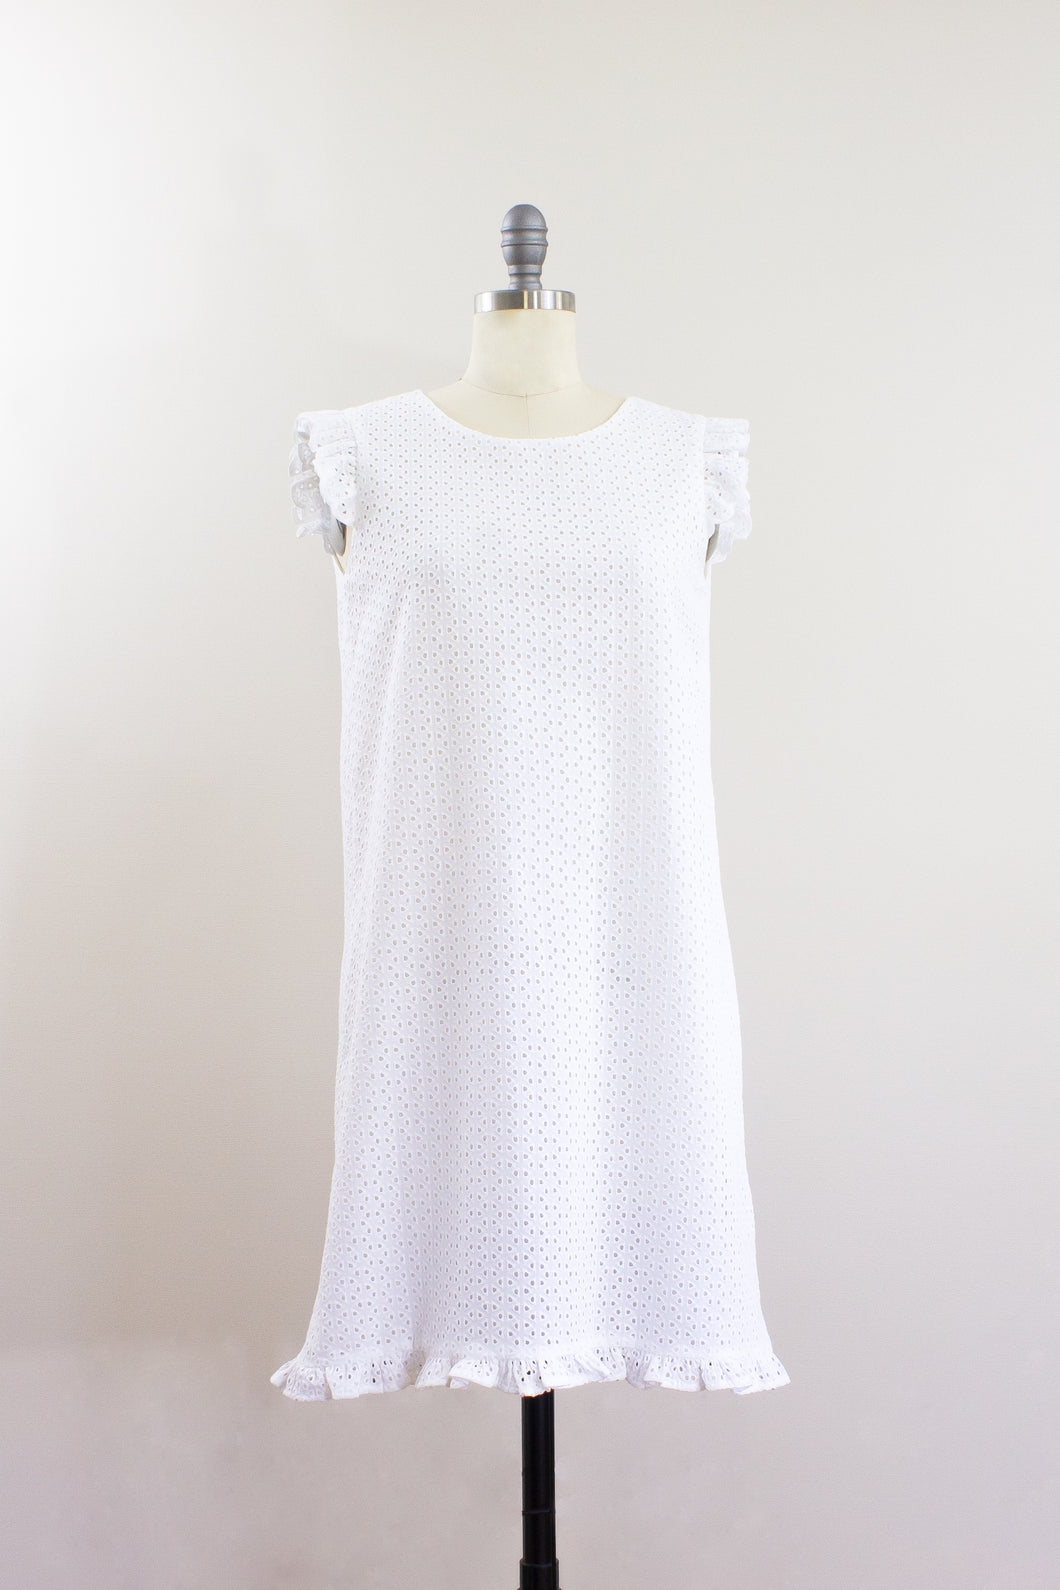 Elisabetta Bellu SS2020 Camellia handmade white cotton eyelet loose fit a line short dress ruffled armholes and bottom front